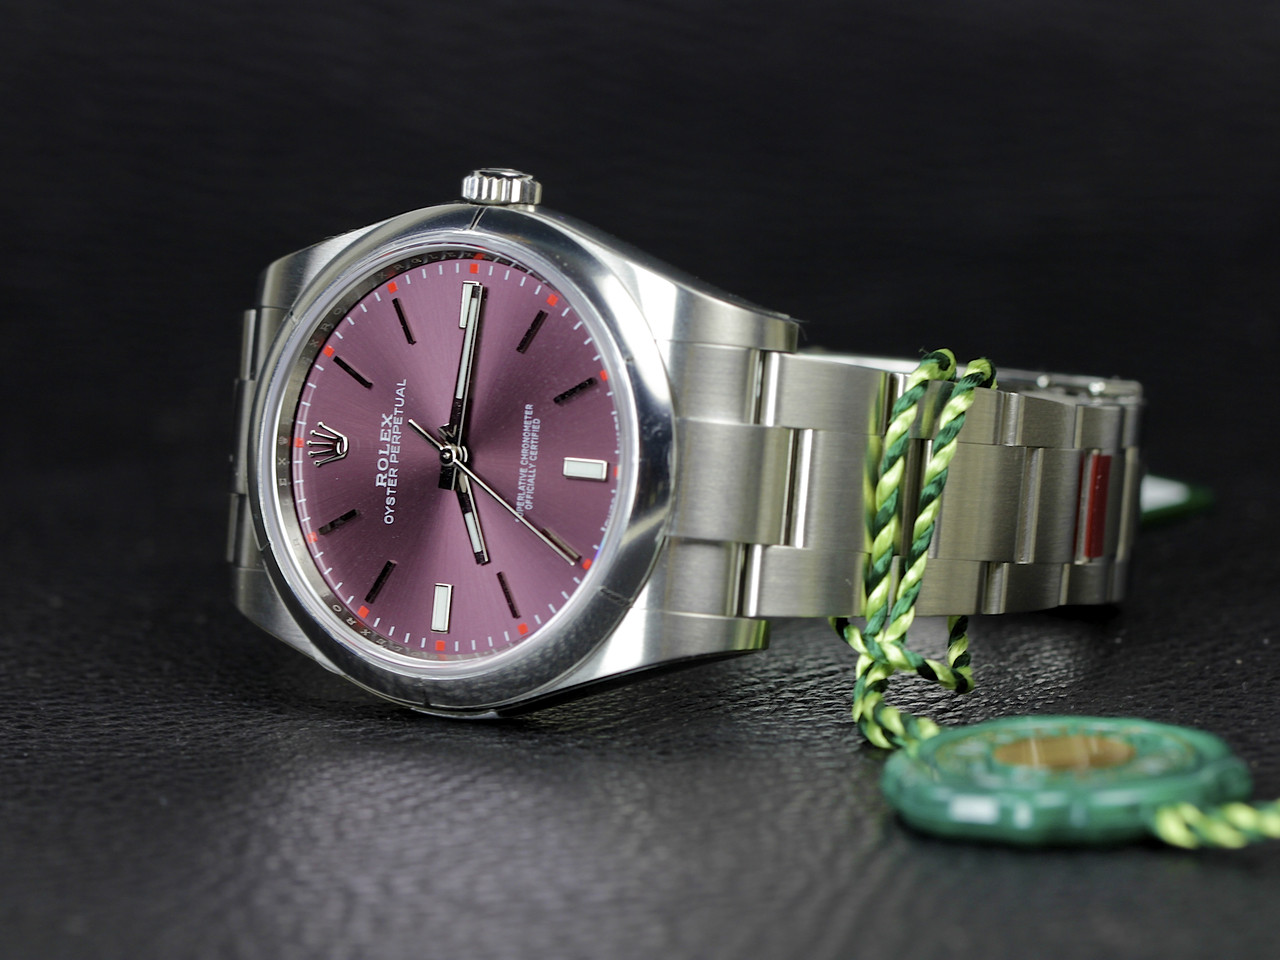 New Rolex Watch Oyster Perpetual 39 Red Grape 114300 available for order from Legend of Time Chicago Watch Center